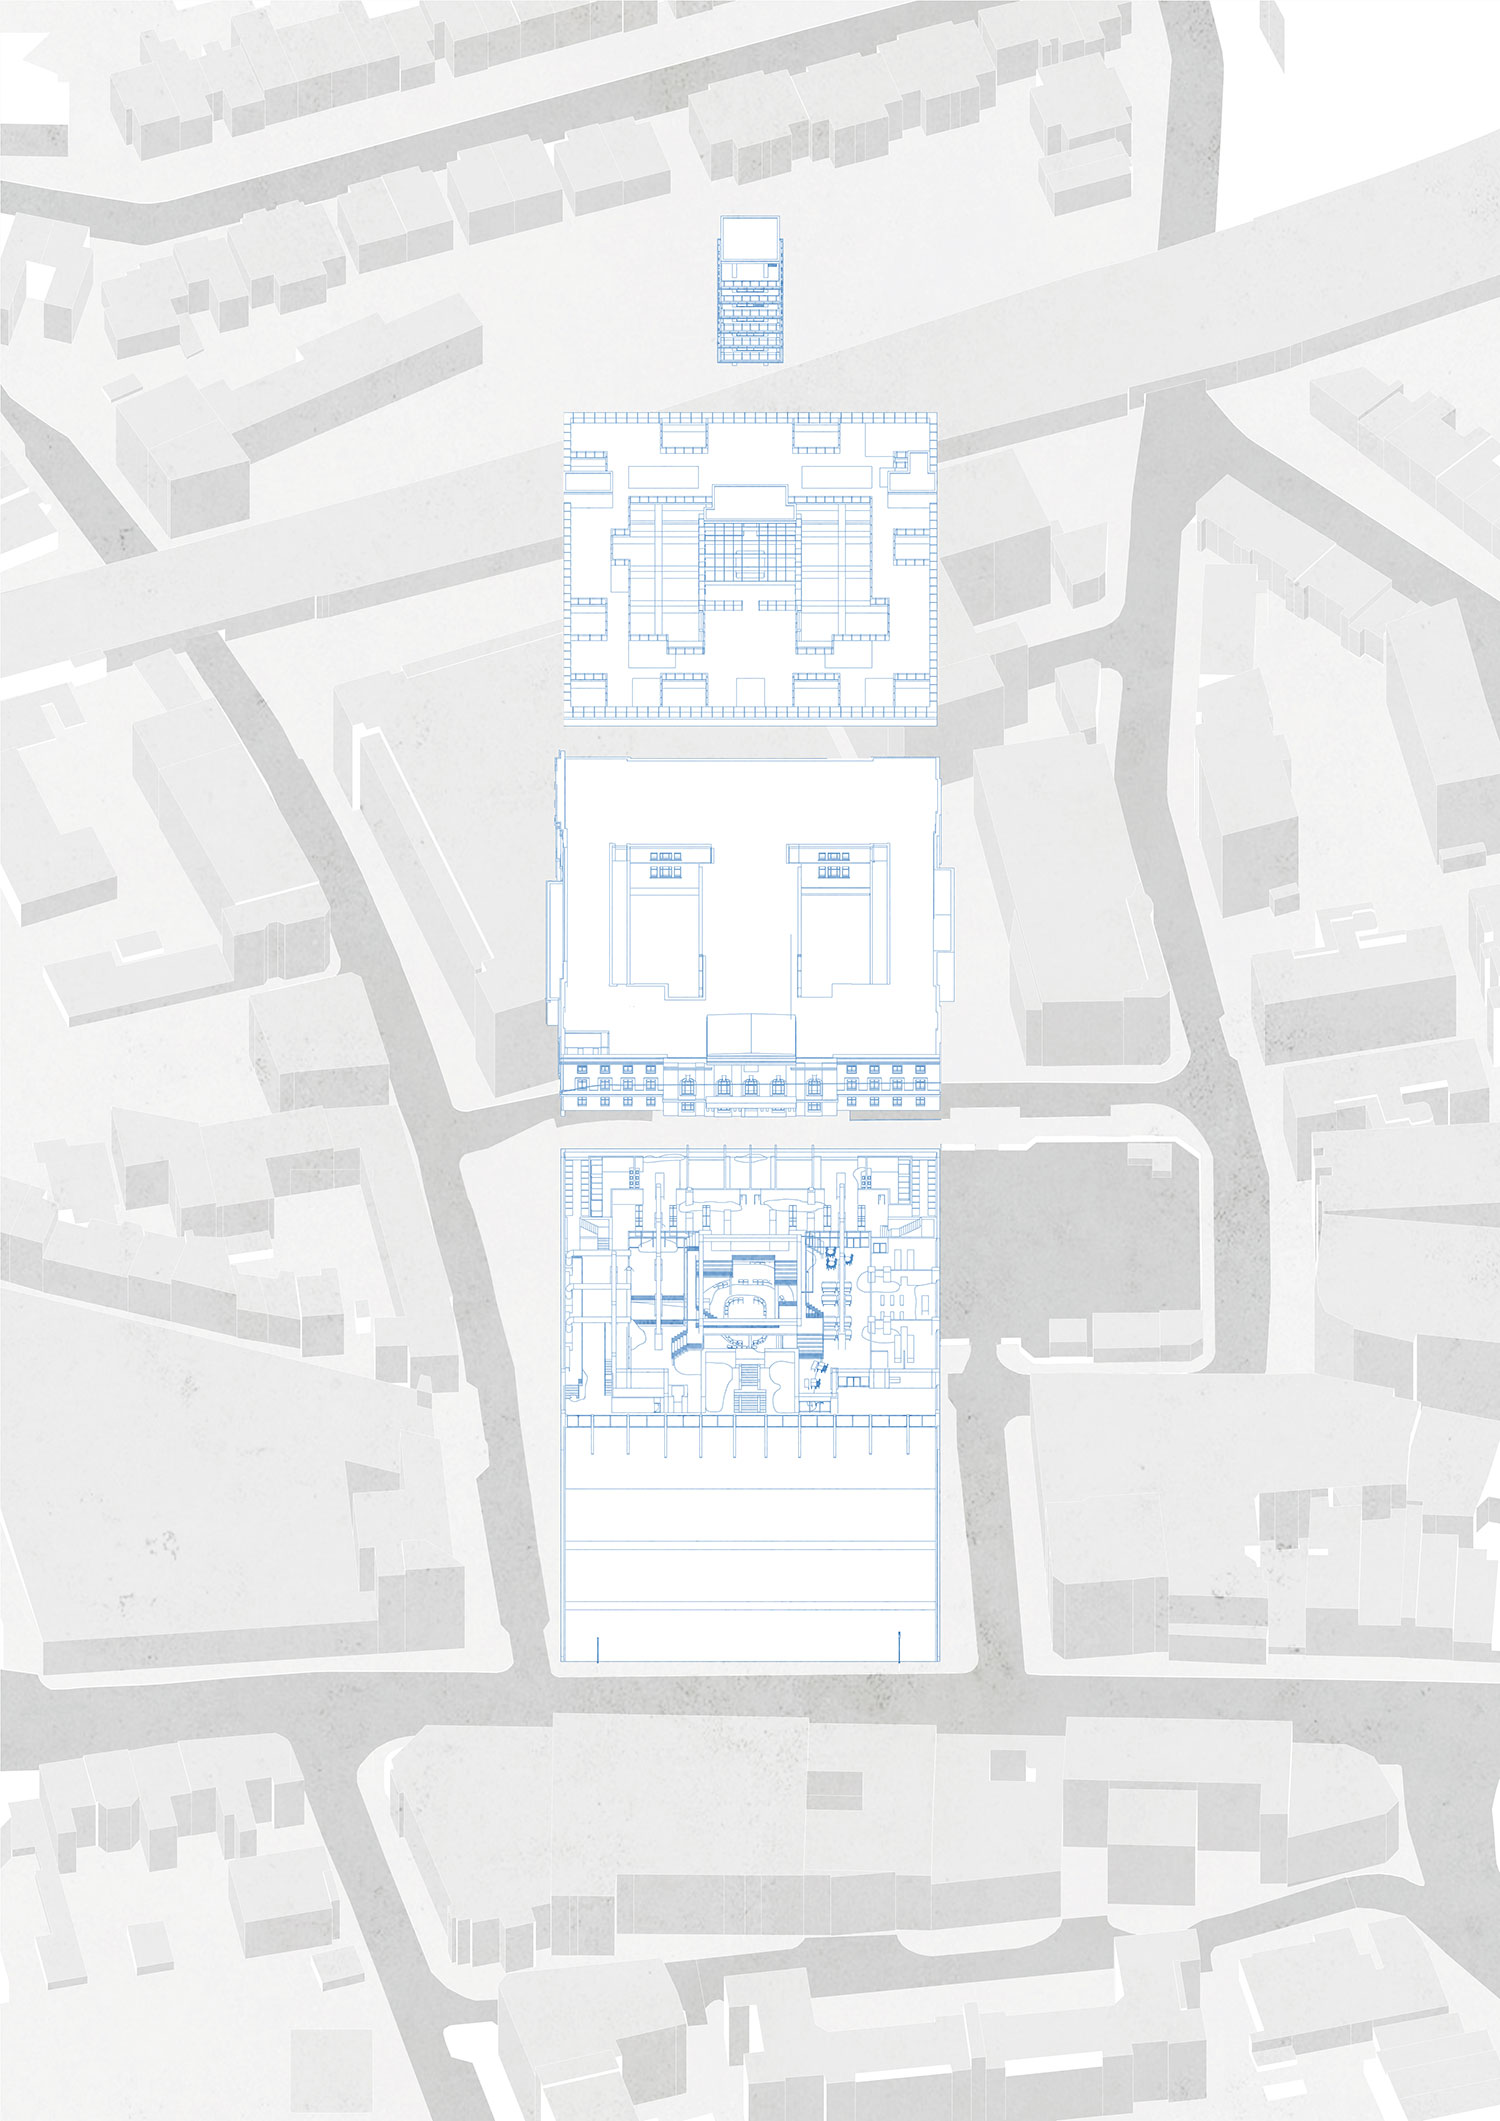 Exploded oblique drawing showing proposal components: basement intervention, existing Town Hall, proposed roofscape, tower